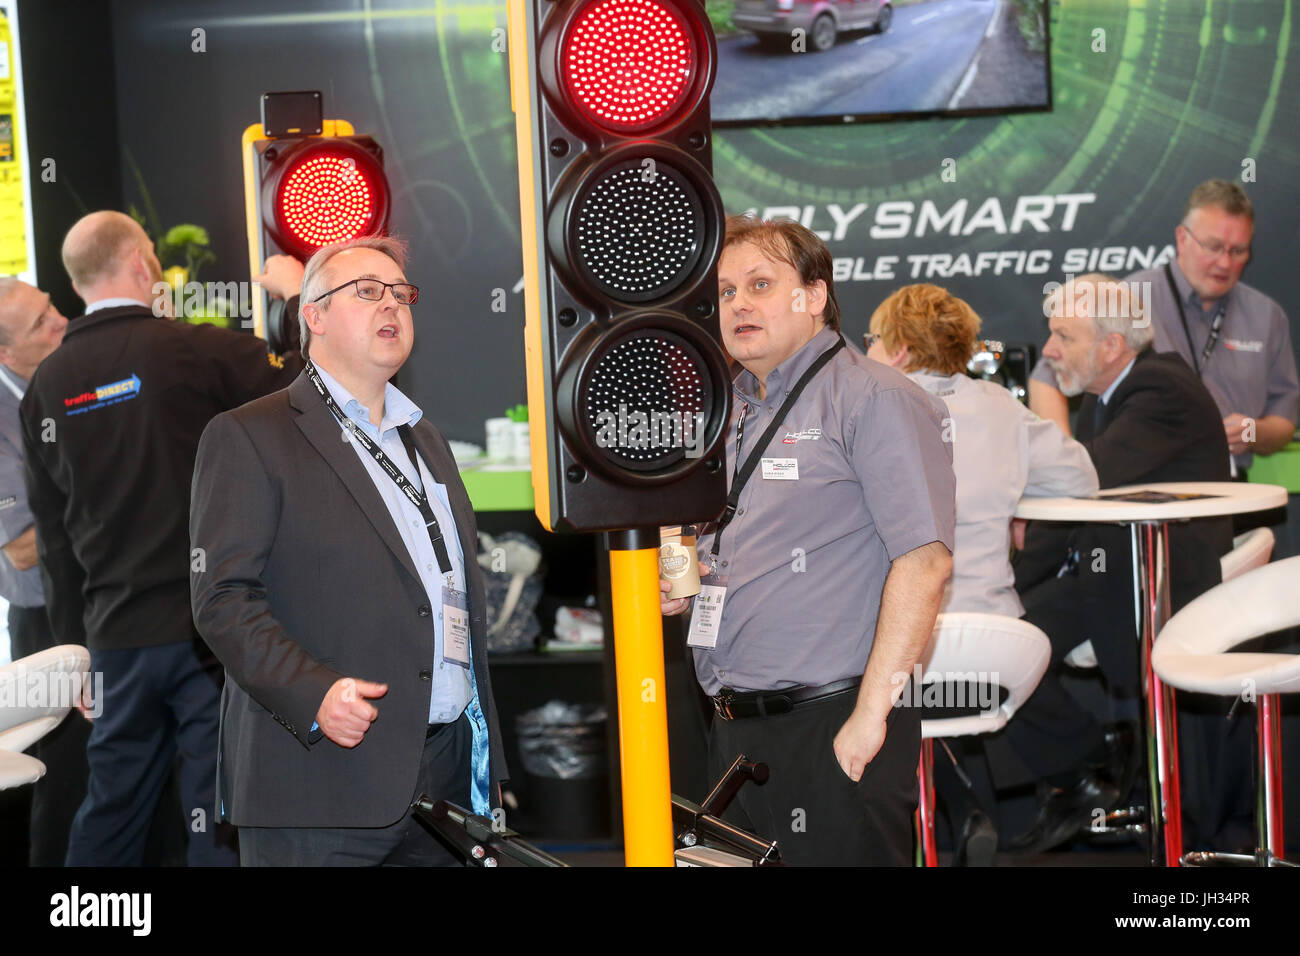 Birmingham, UK. Traffex, 2017 at the NEC. The show for road traffic management professionals featuring the latest - Stock Image